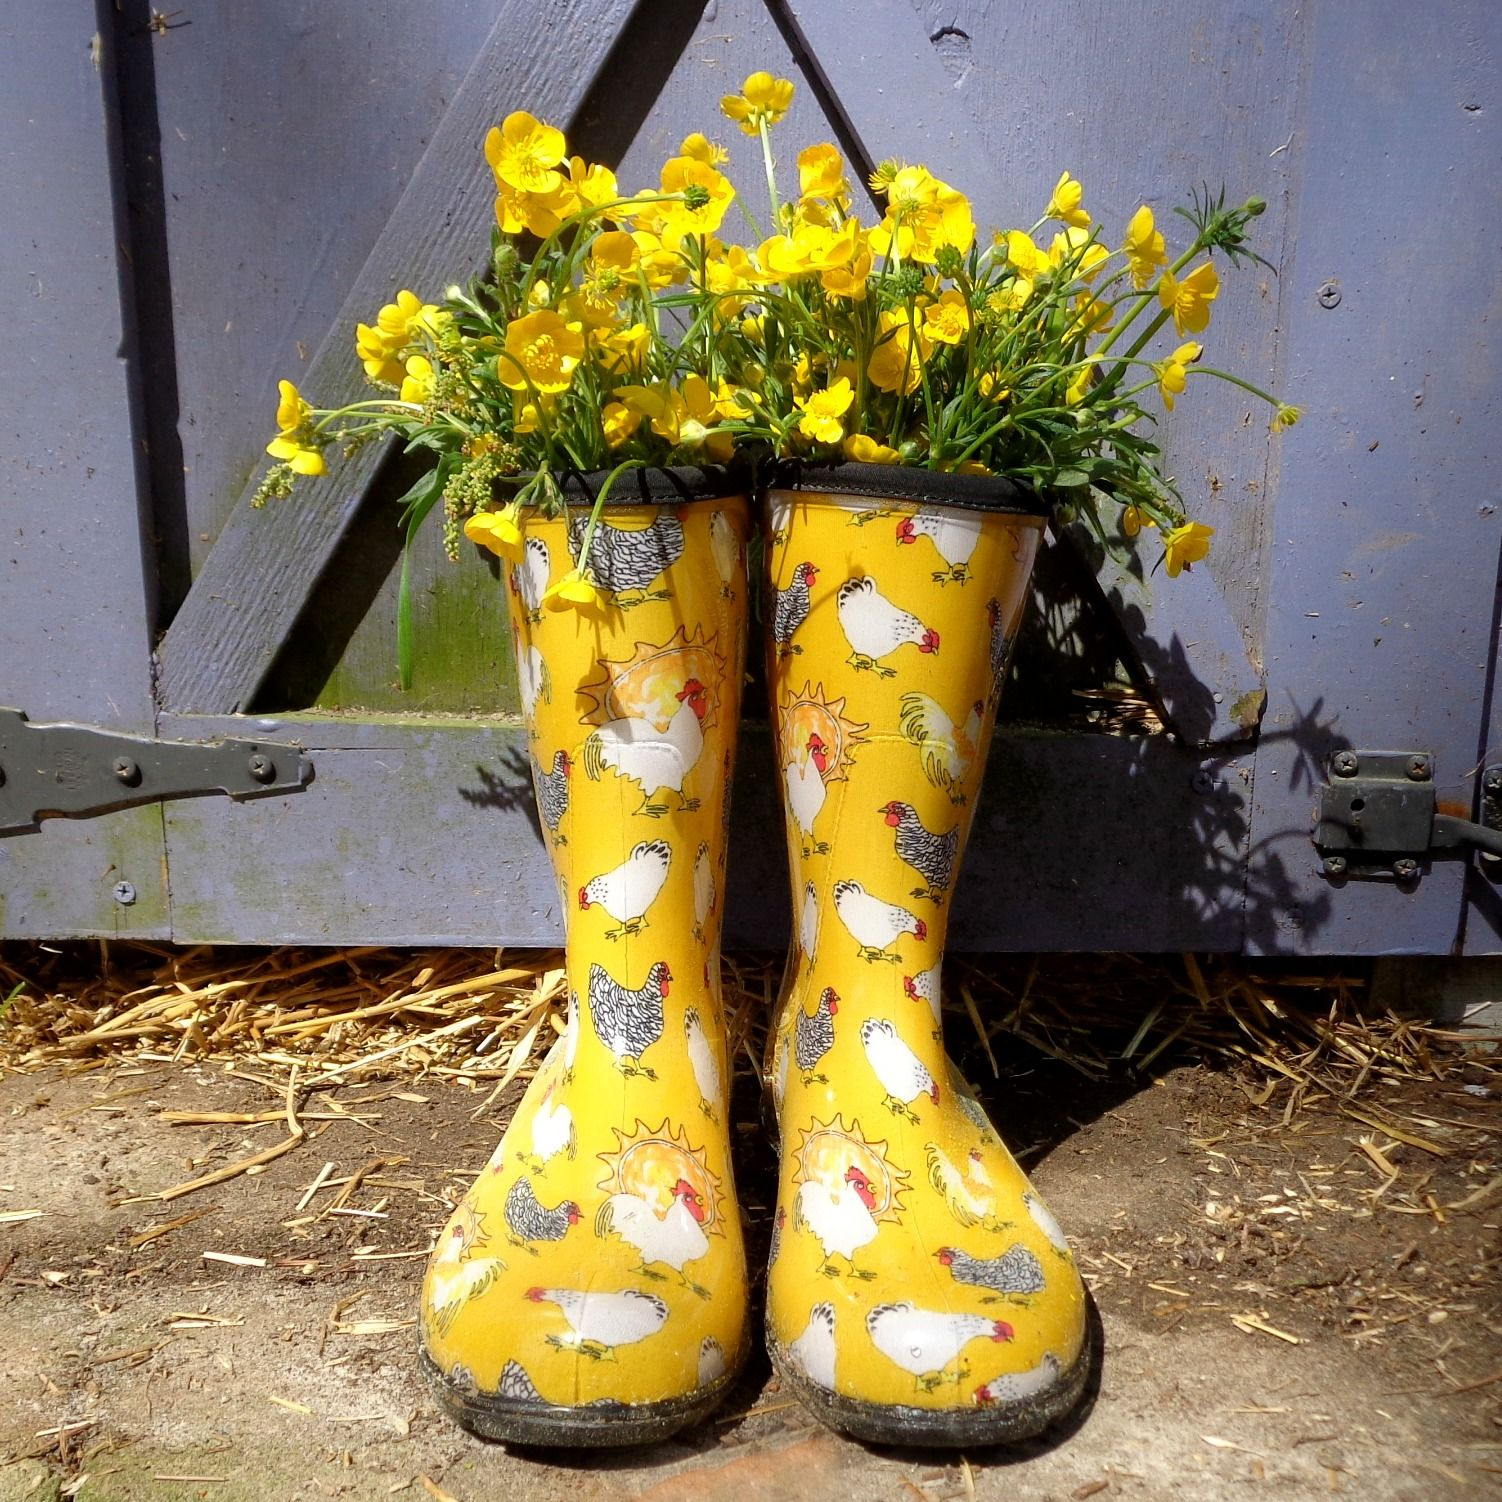 Chicken Muck Boots are here from Sloggers! http://www.sloggers.com ...